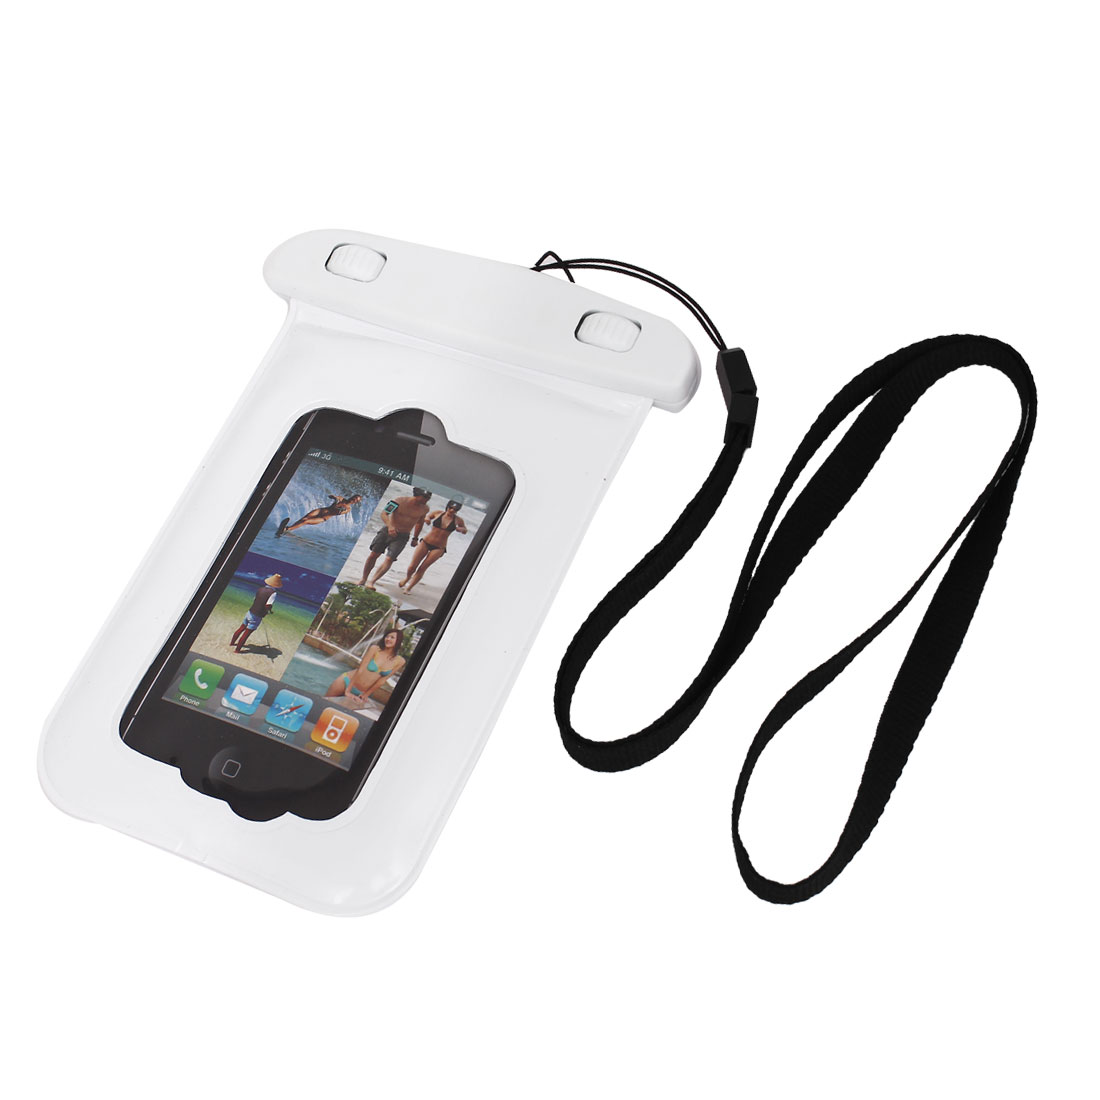 Waterproof Bag Holder Pouch Case White for iPhone 4/4S w Neck Strap